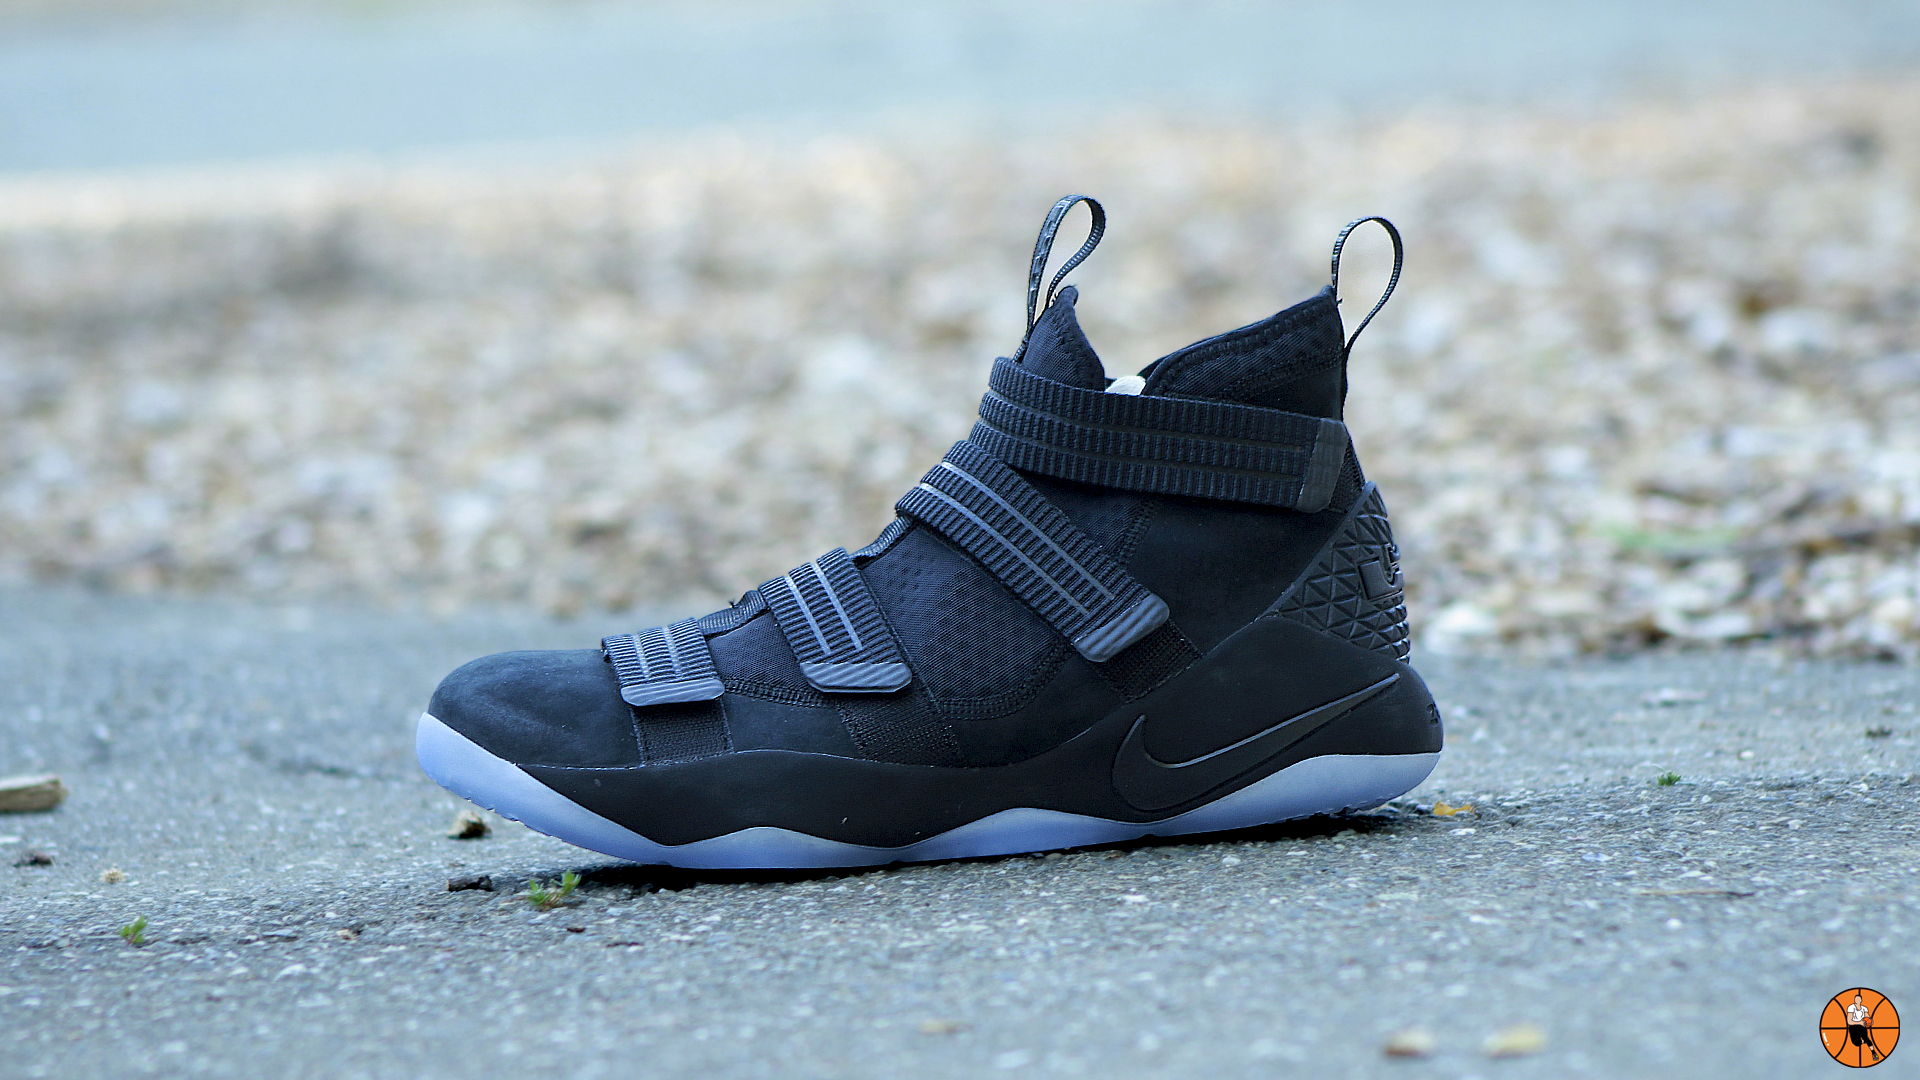 quality design df7e8 de15b Nike LeBron Soldier XI (11) - Detailed Review - WearTesters